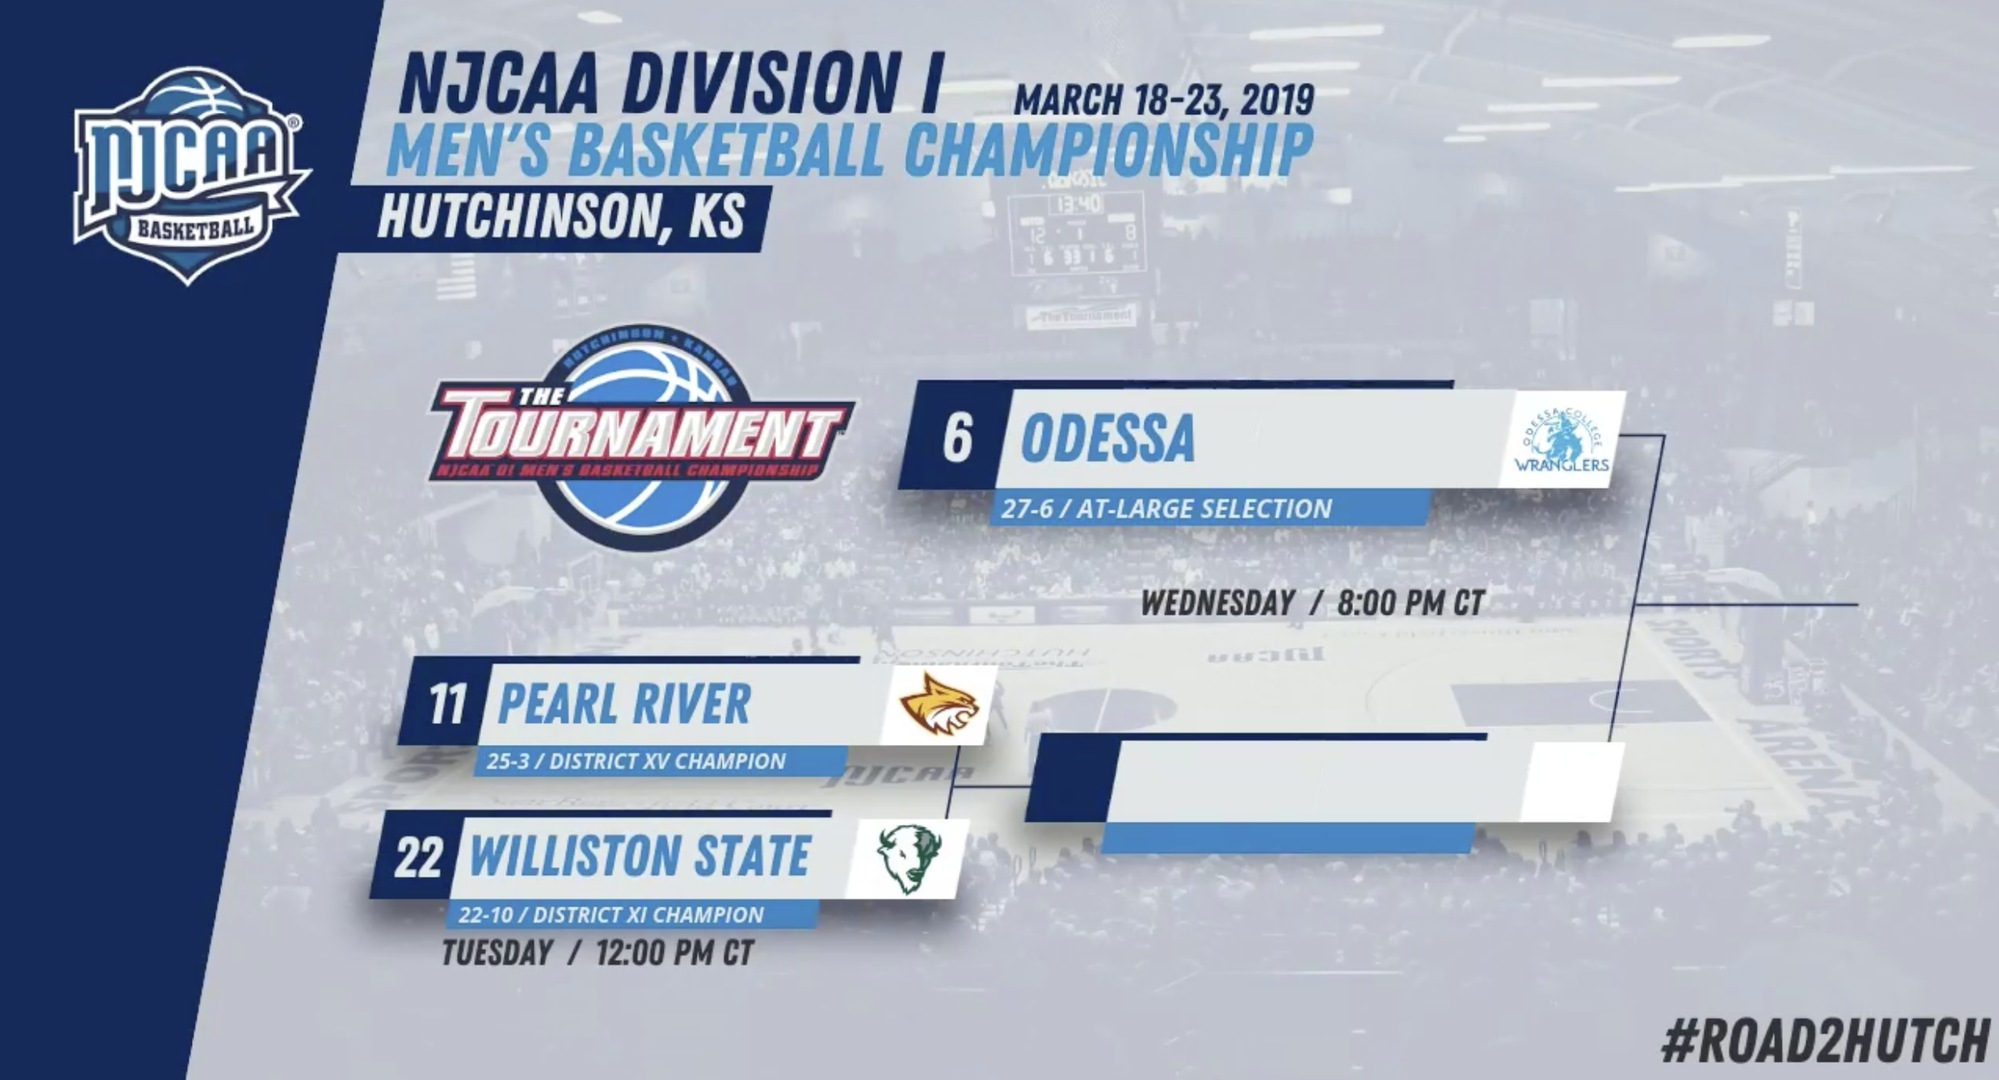 Pearl River earns 11th seed, will face Williston State in NJCAA Tournament